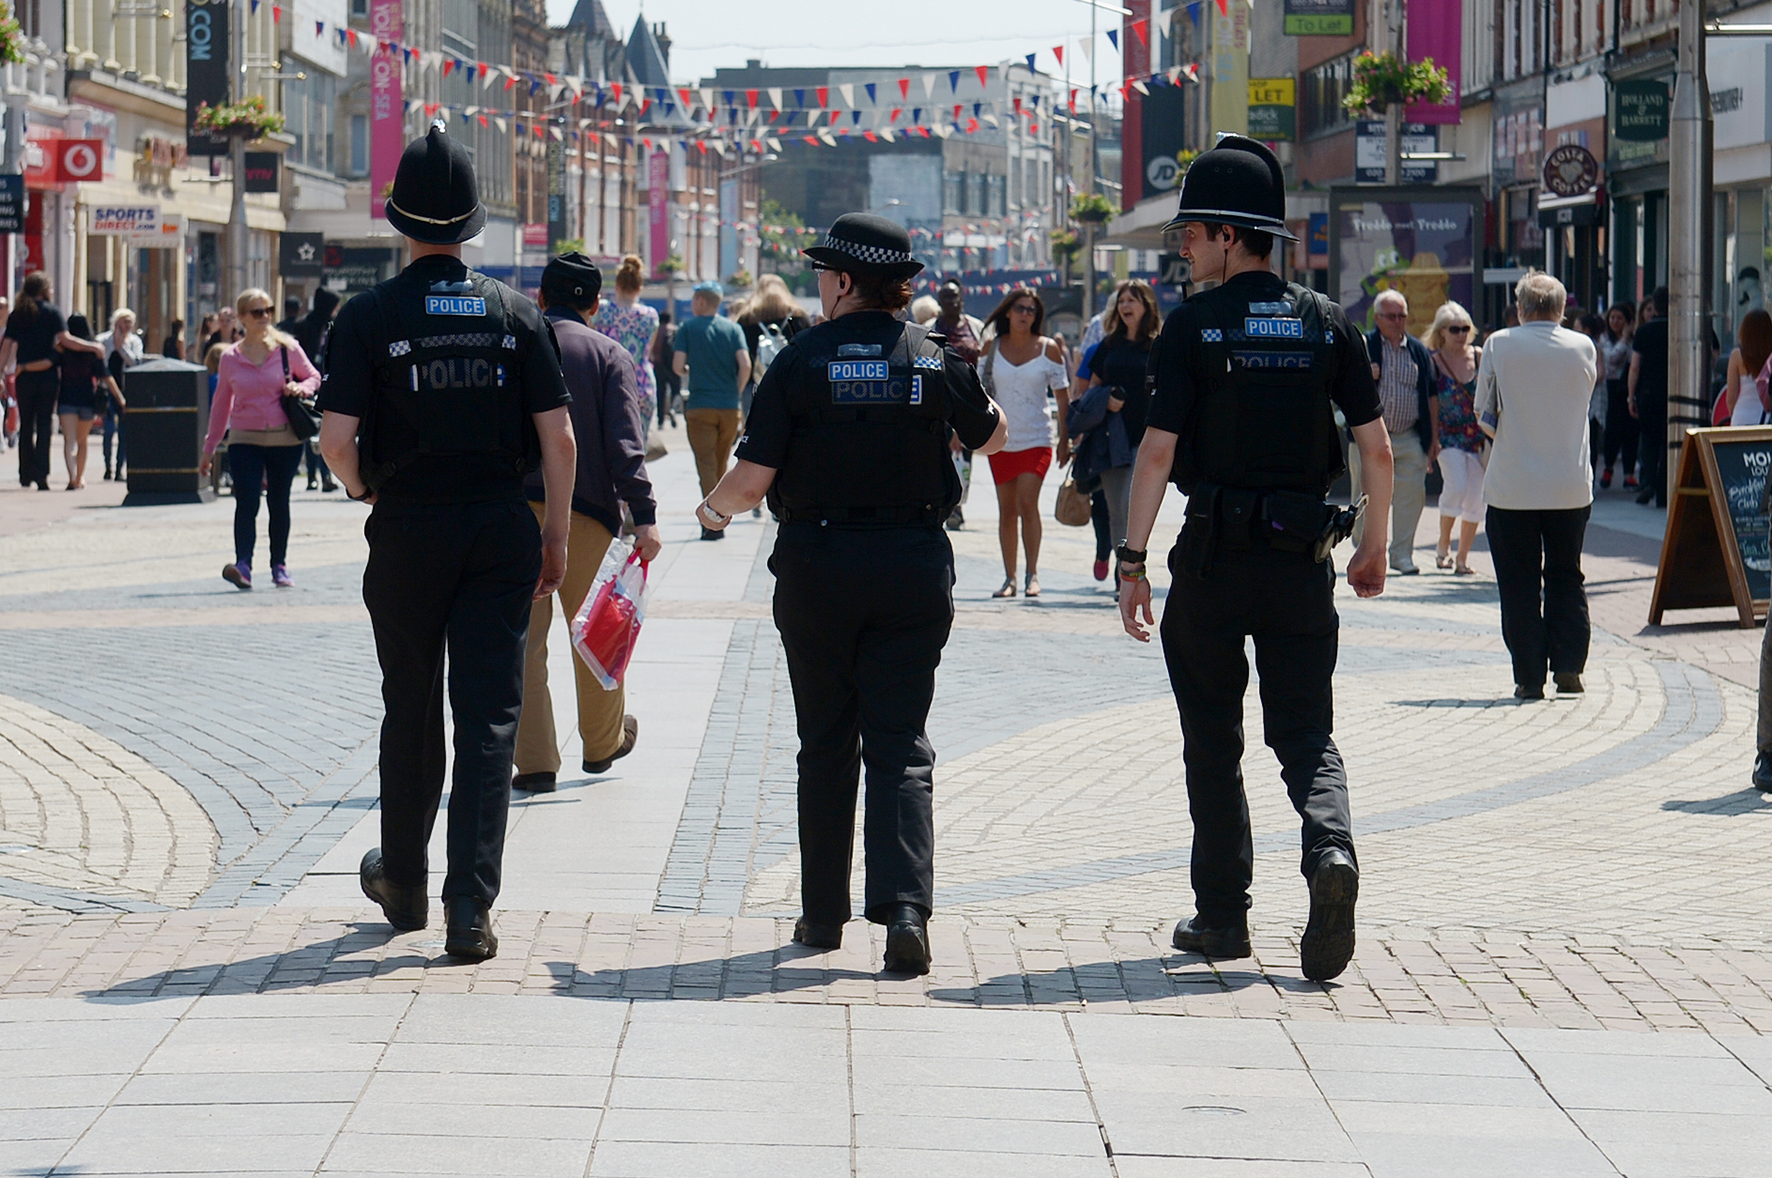 Police in Southend high street